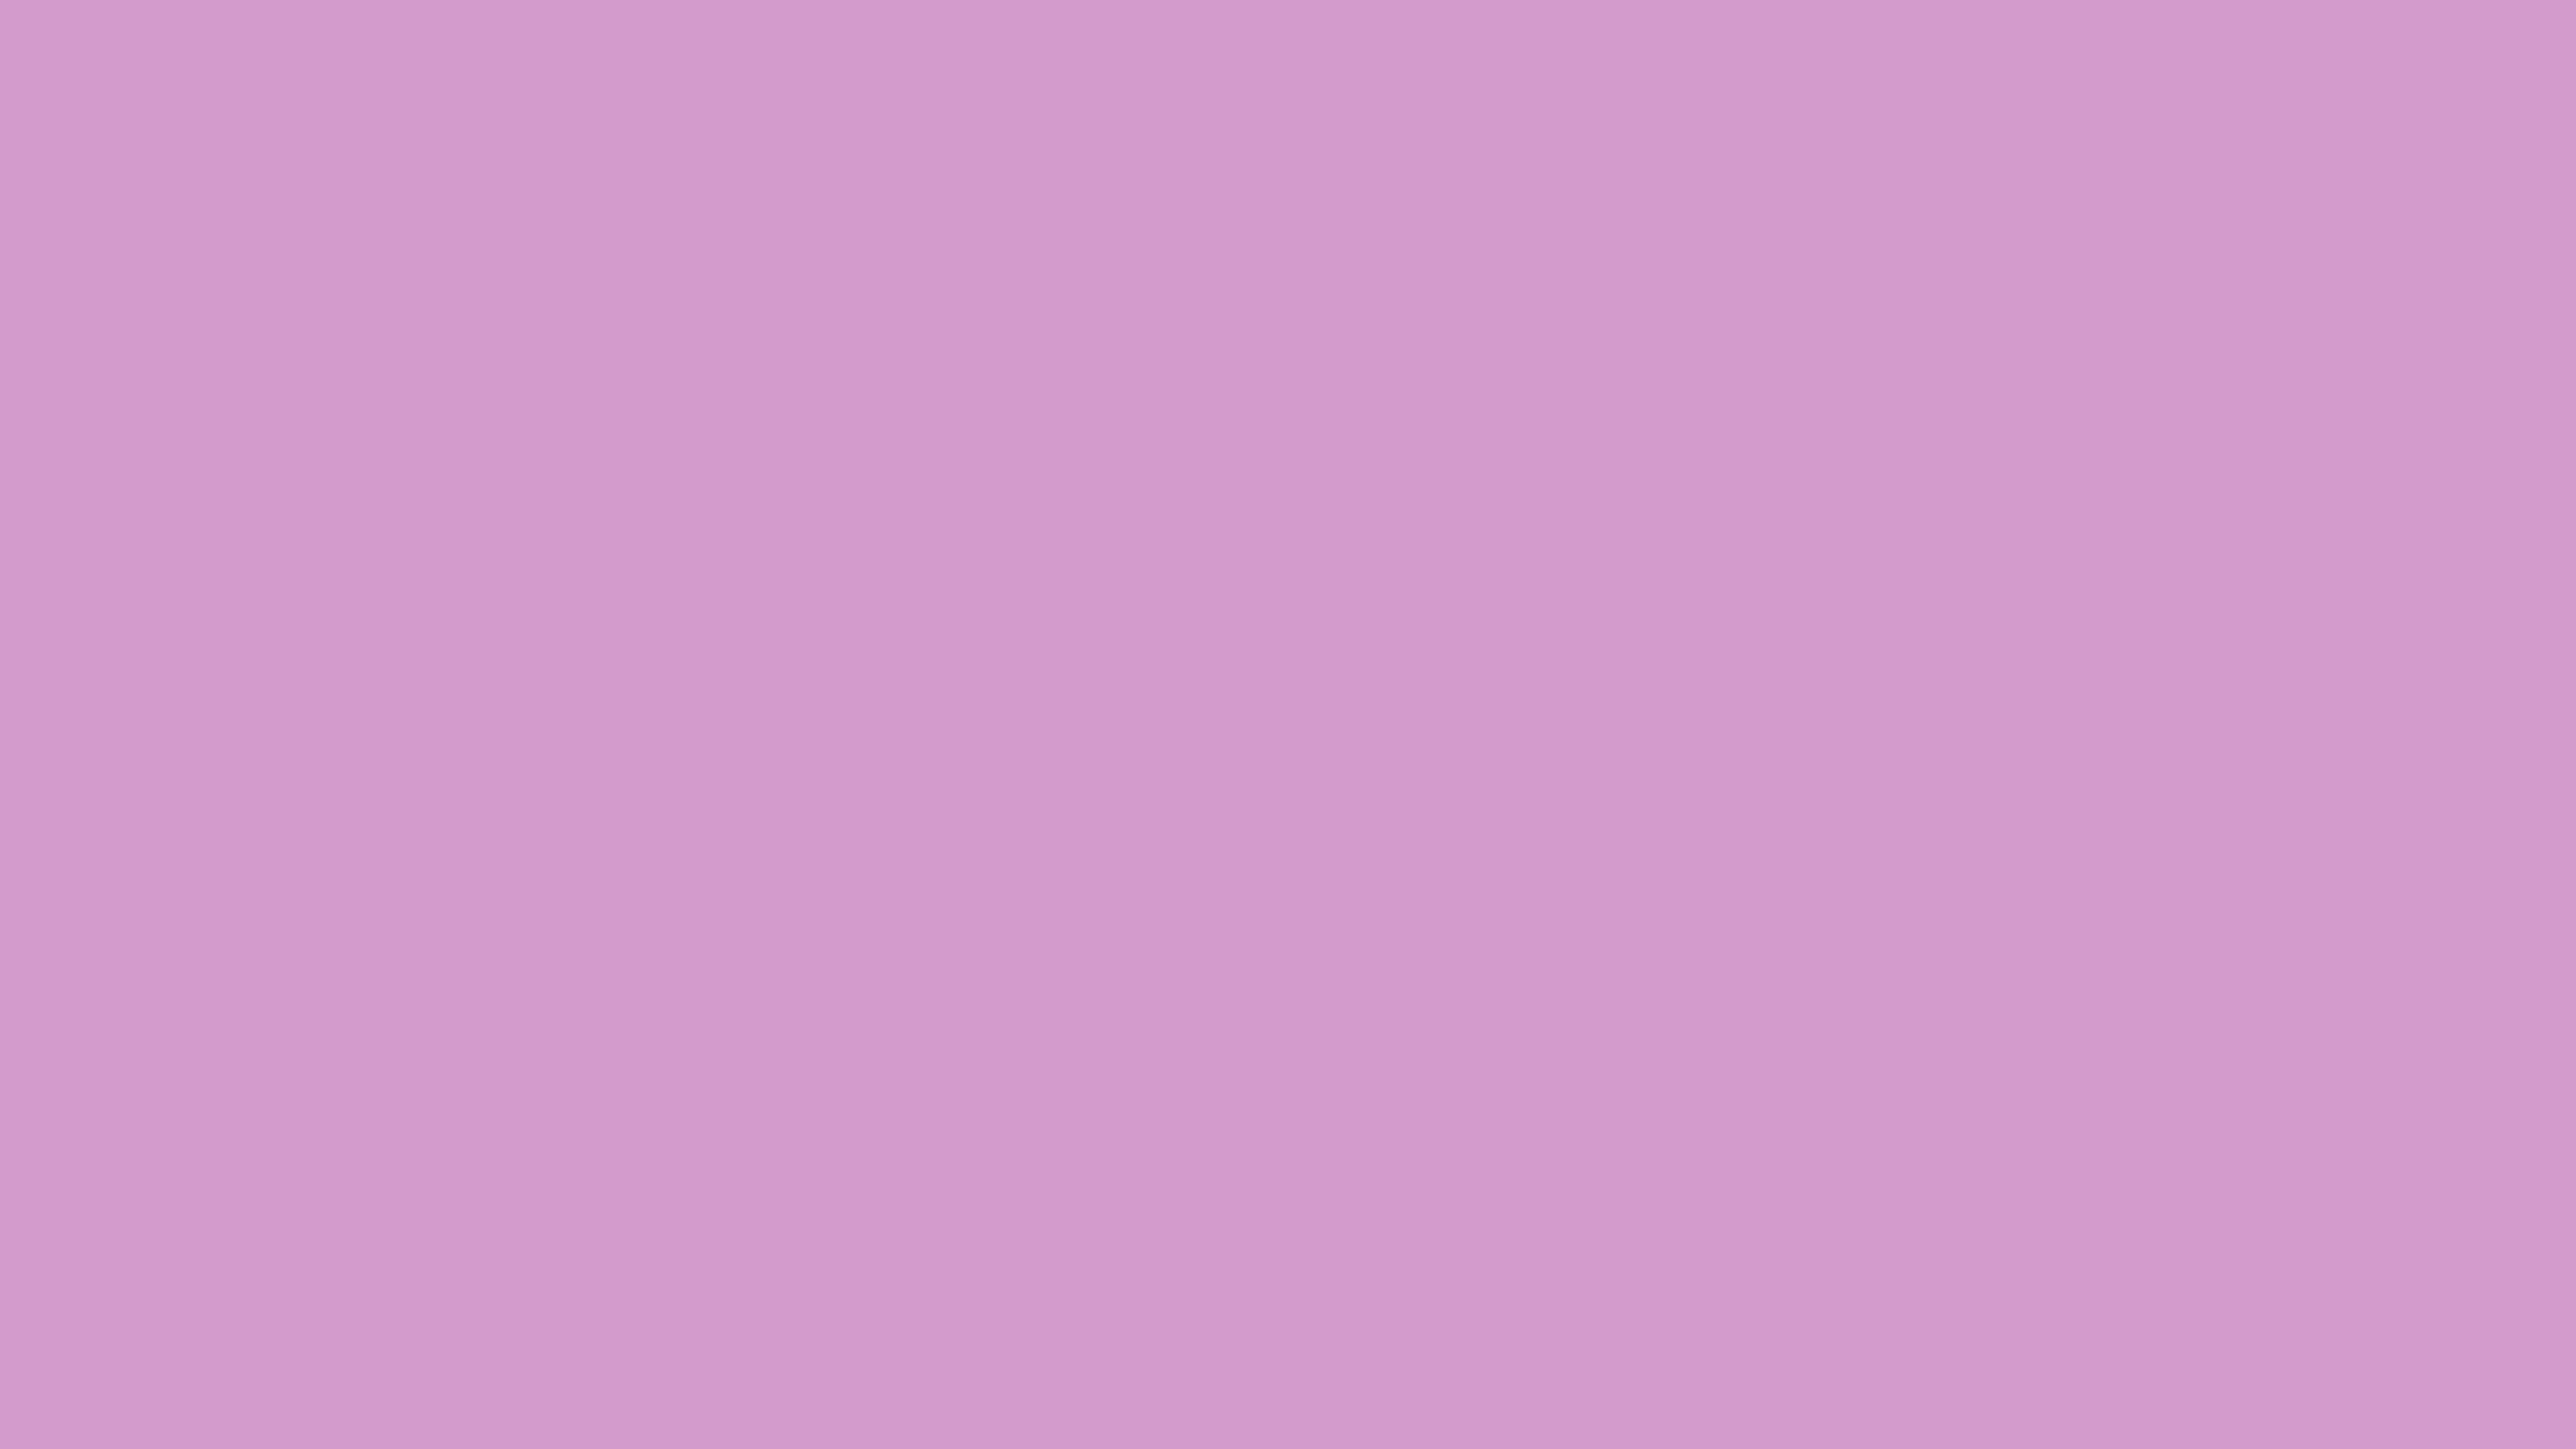 3840x2160 Light Medium Orchid Solid Color Background